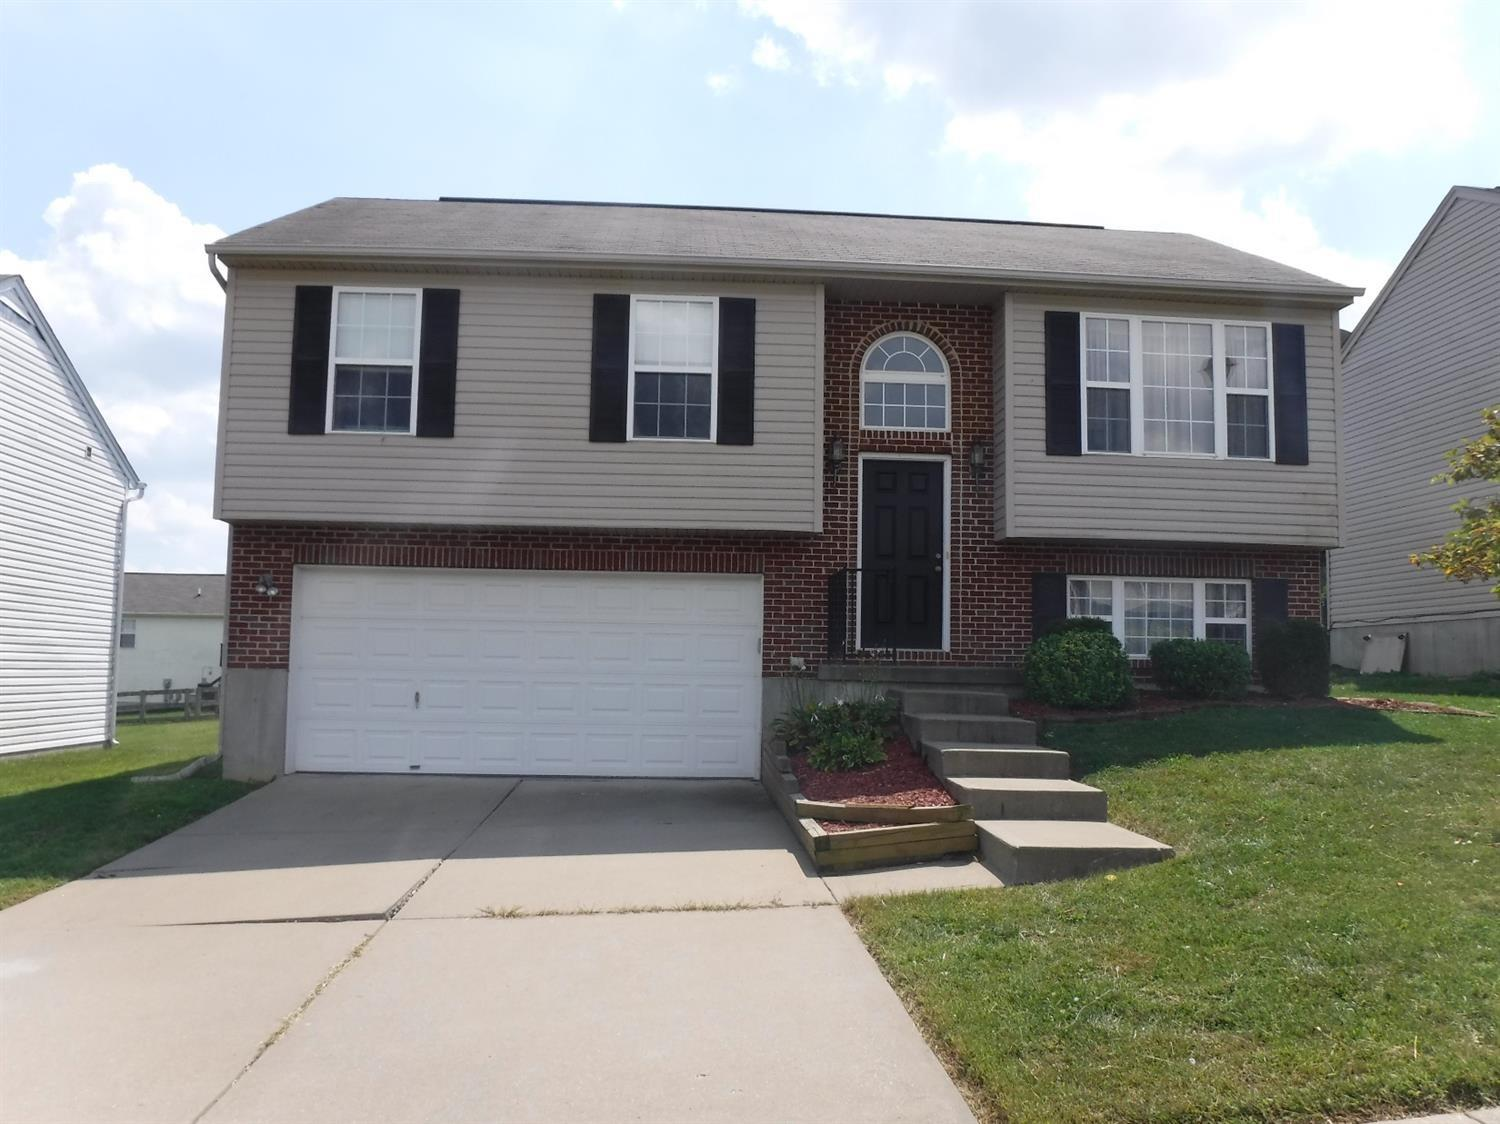 Photo 1 for 623 Cutter Ln Independence, KY 41051